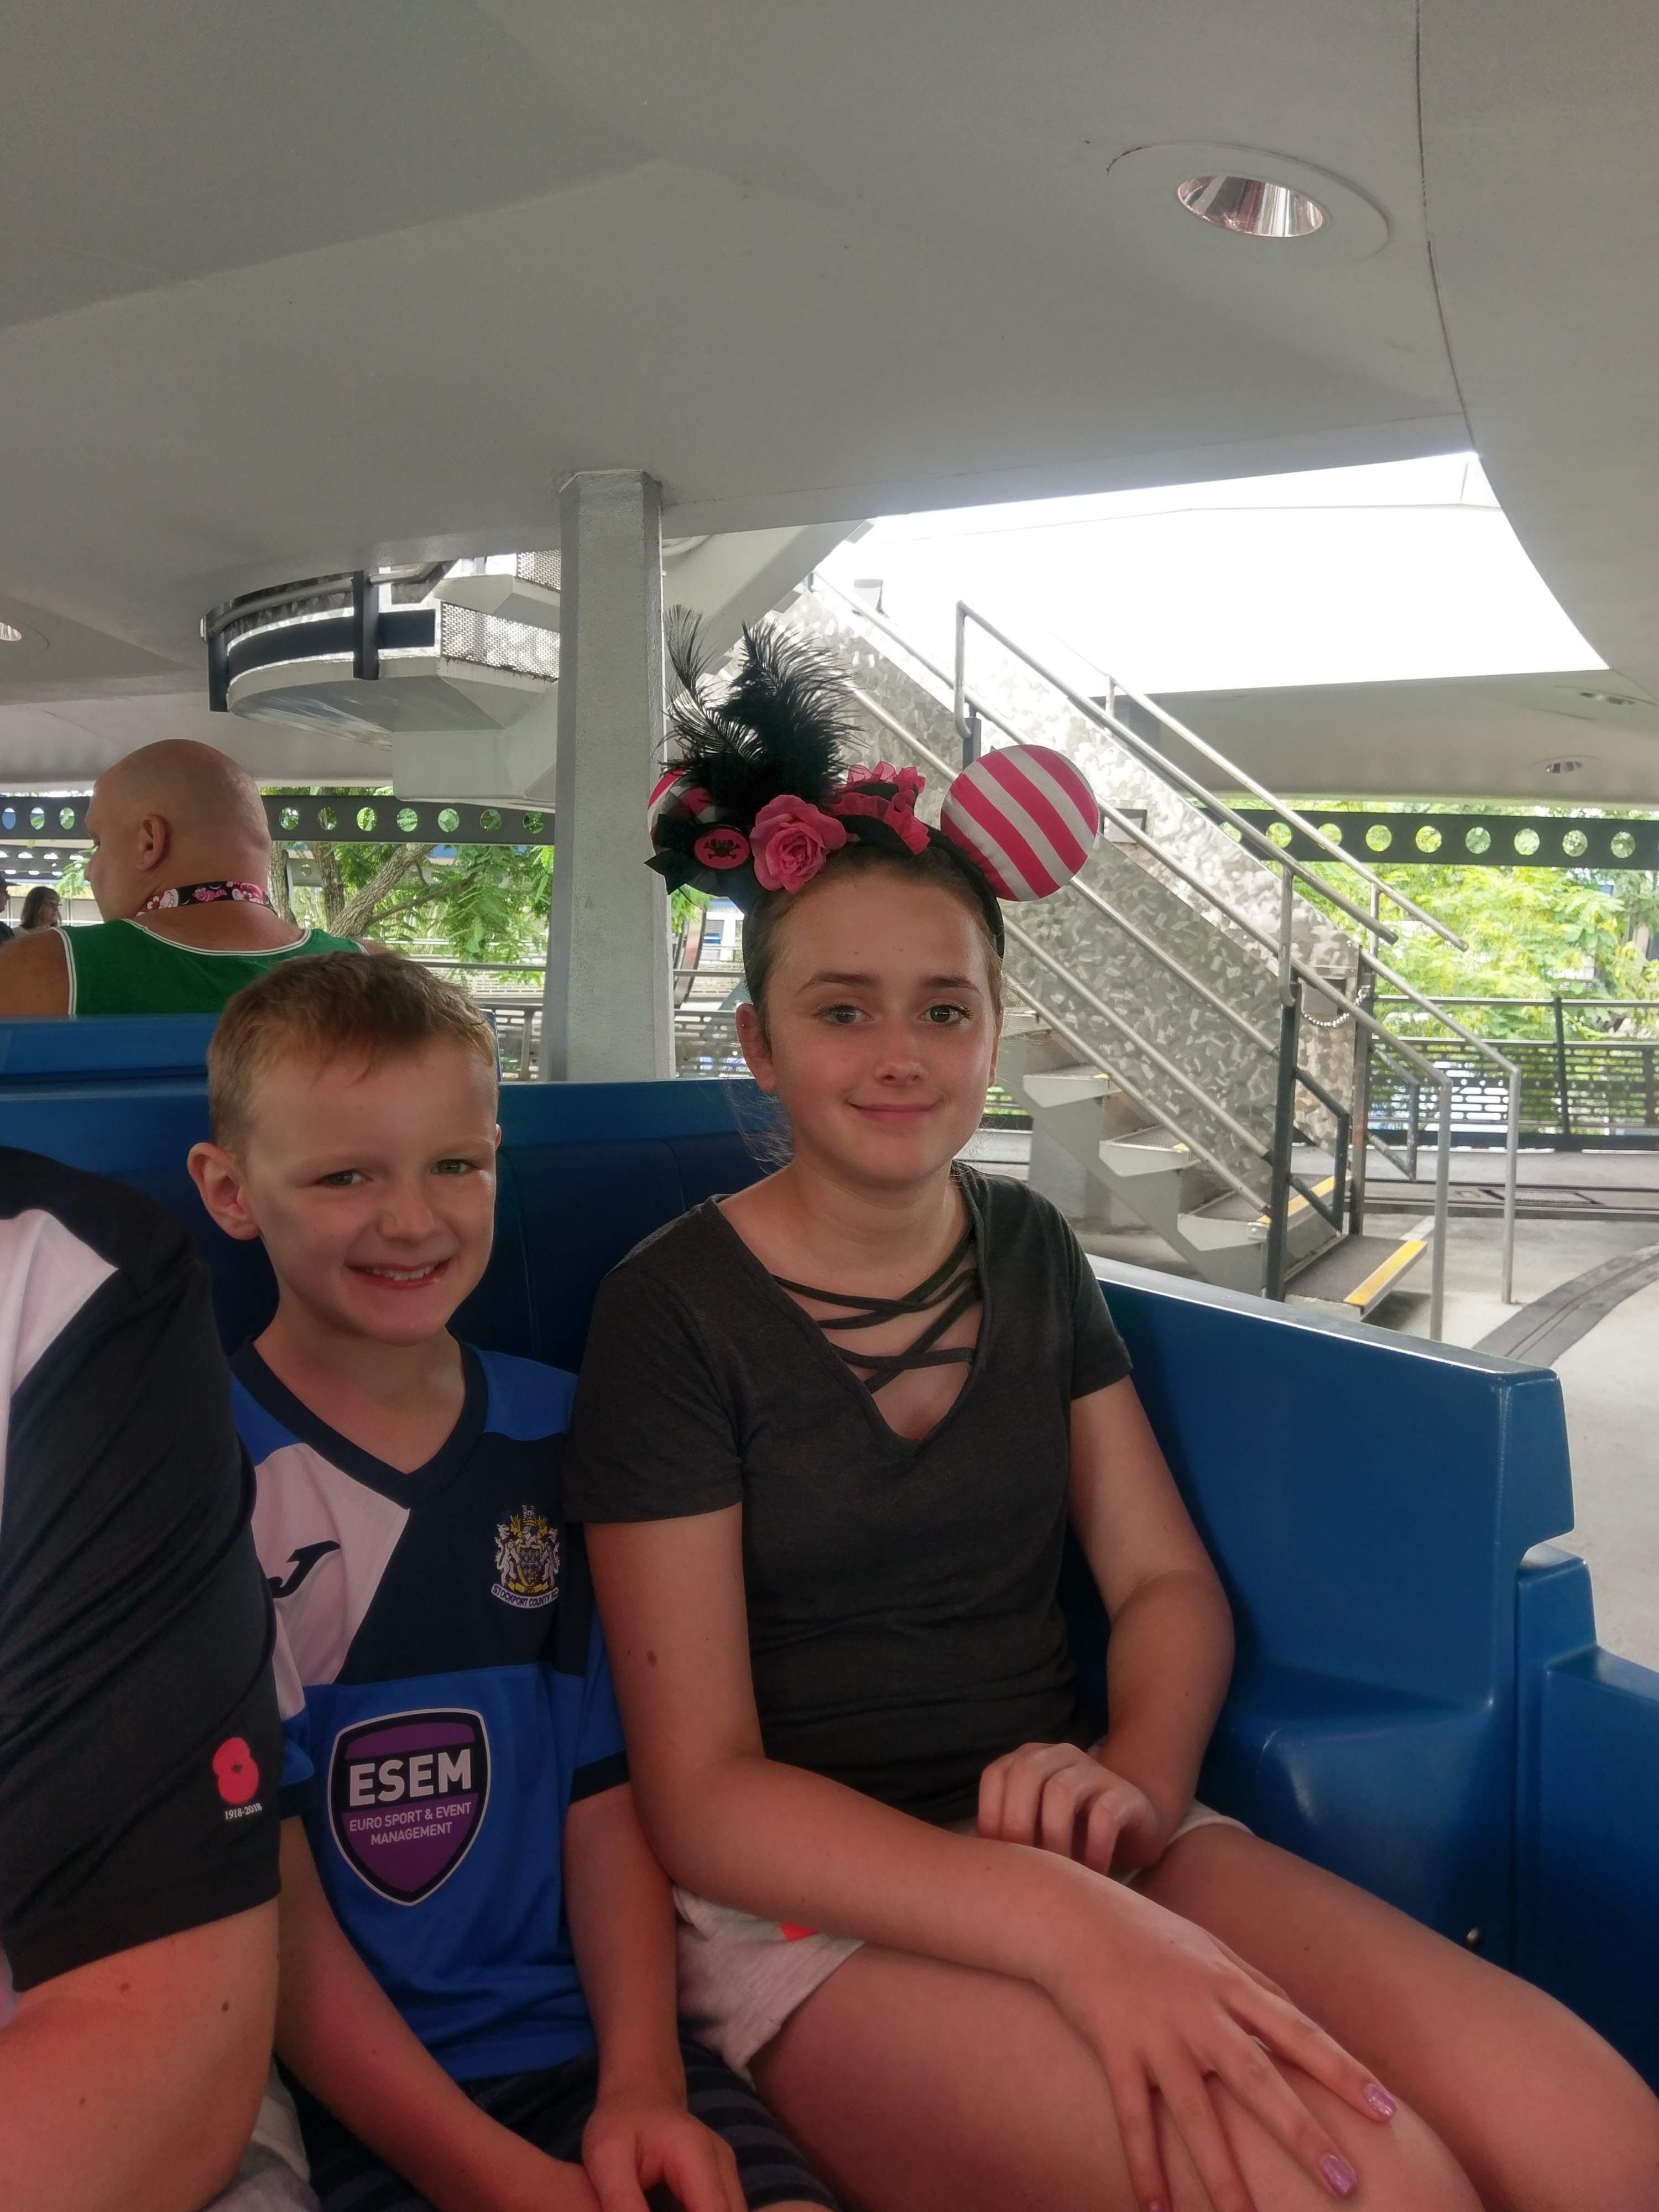 The Tomorrowland Transit Authority People Mover